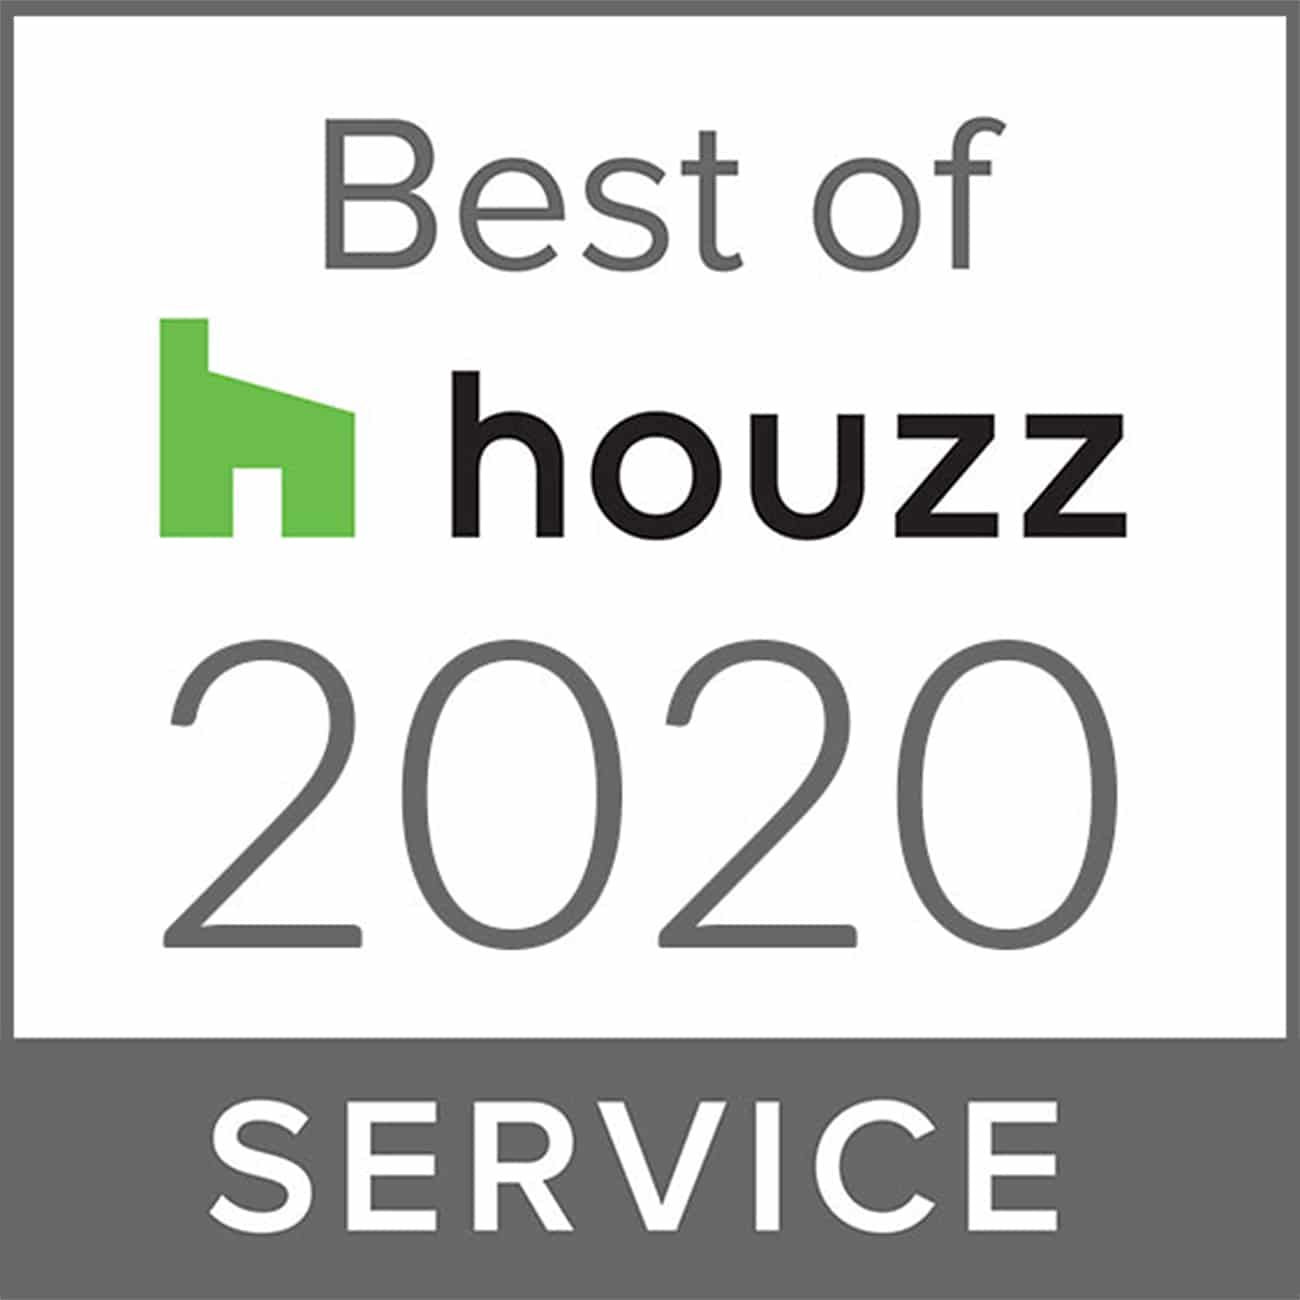 Best of Houzz 2020 - Atelier Naudier